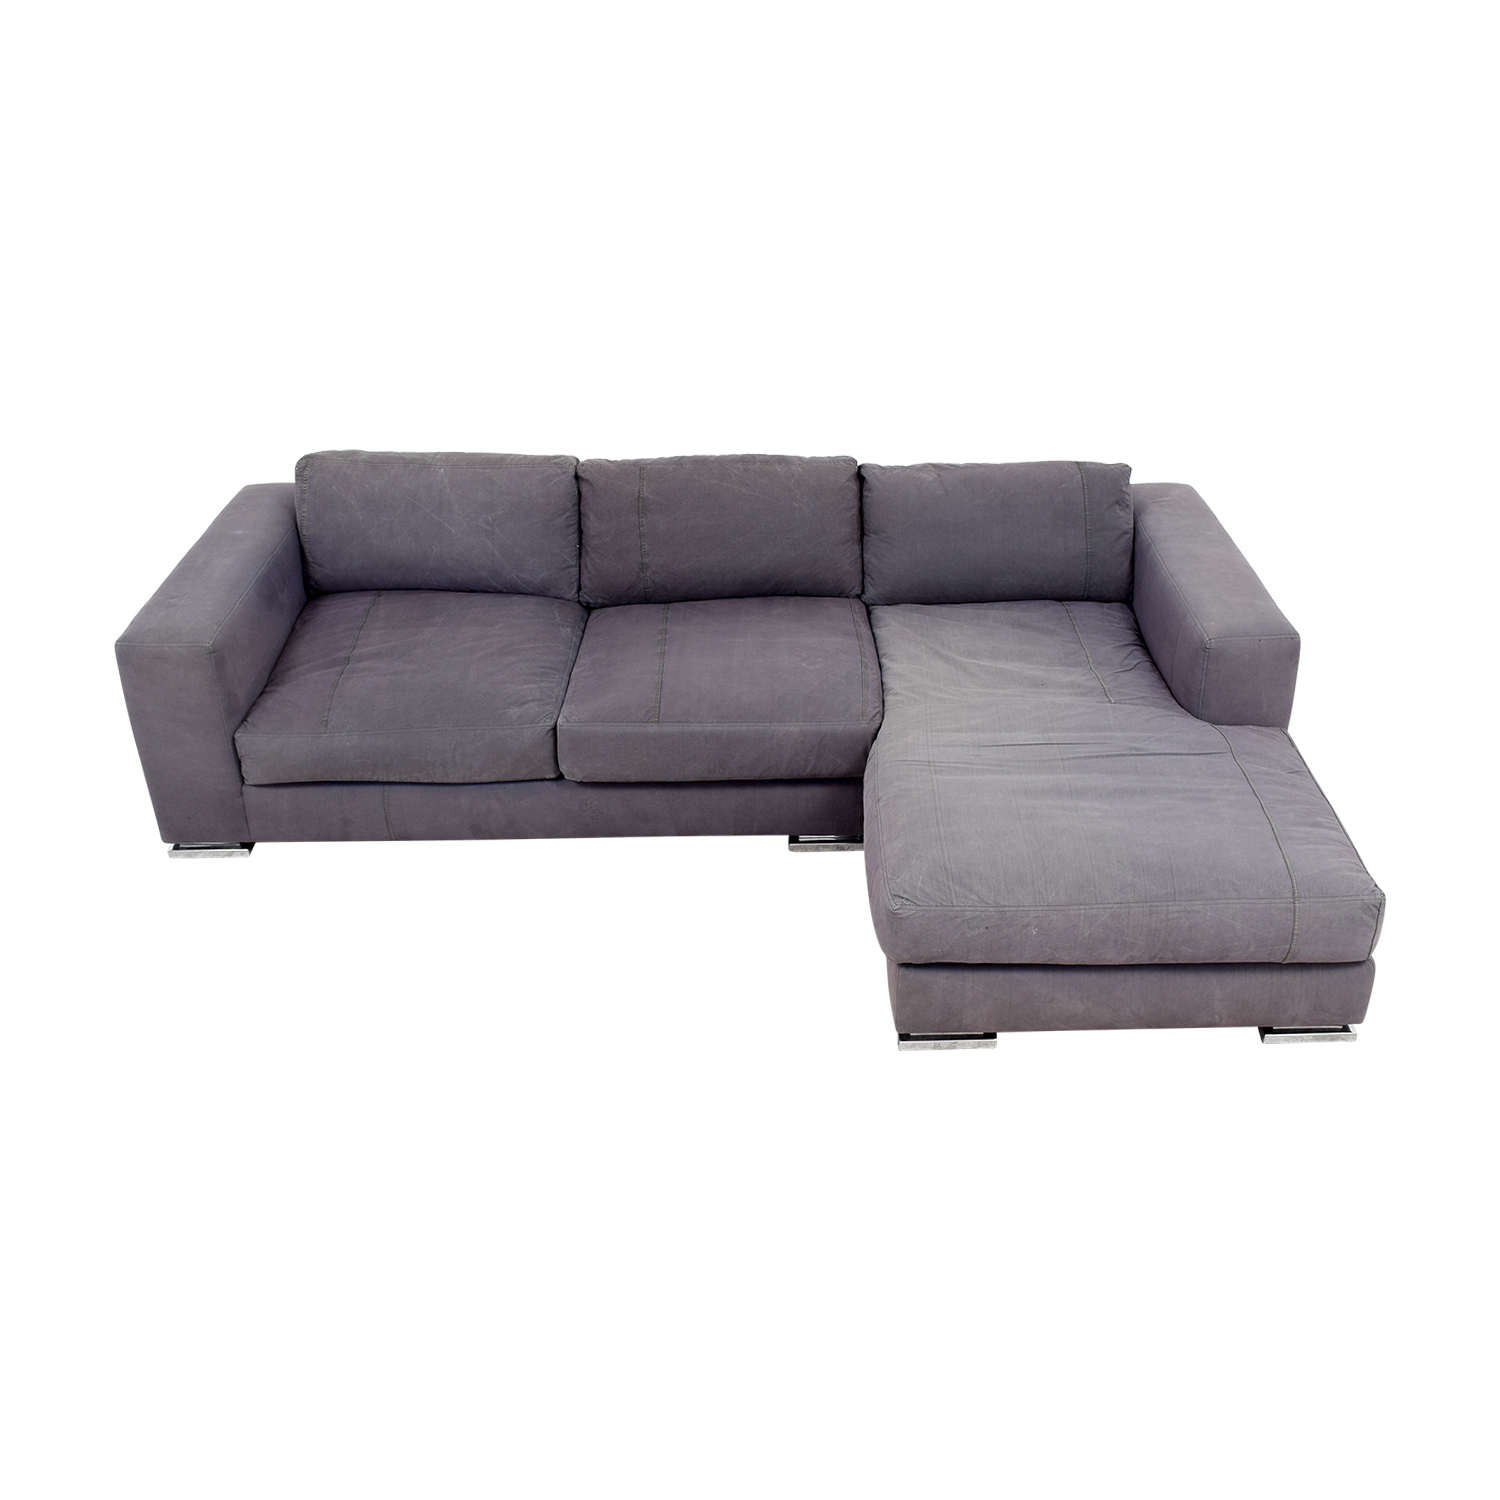 Environment Furniture Environment Furniture Safia Sectional Grey Sofa coupon